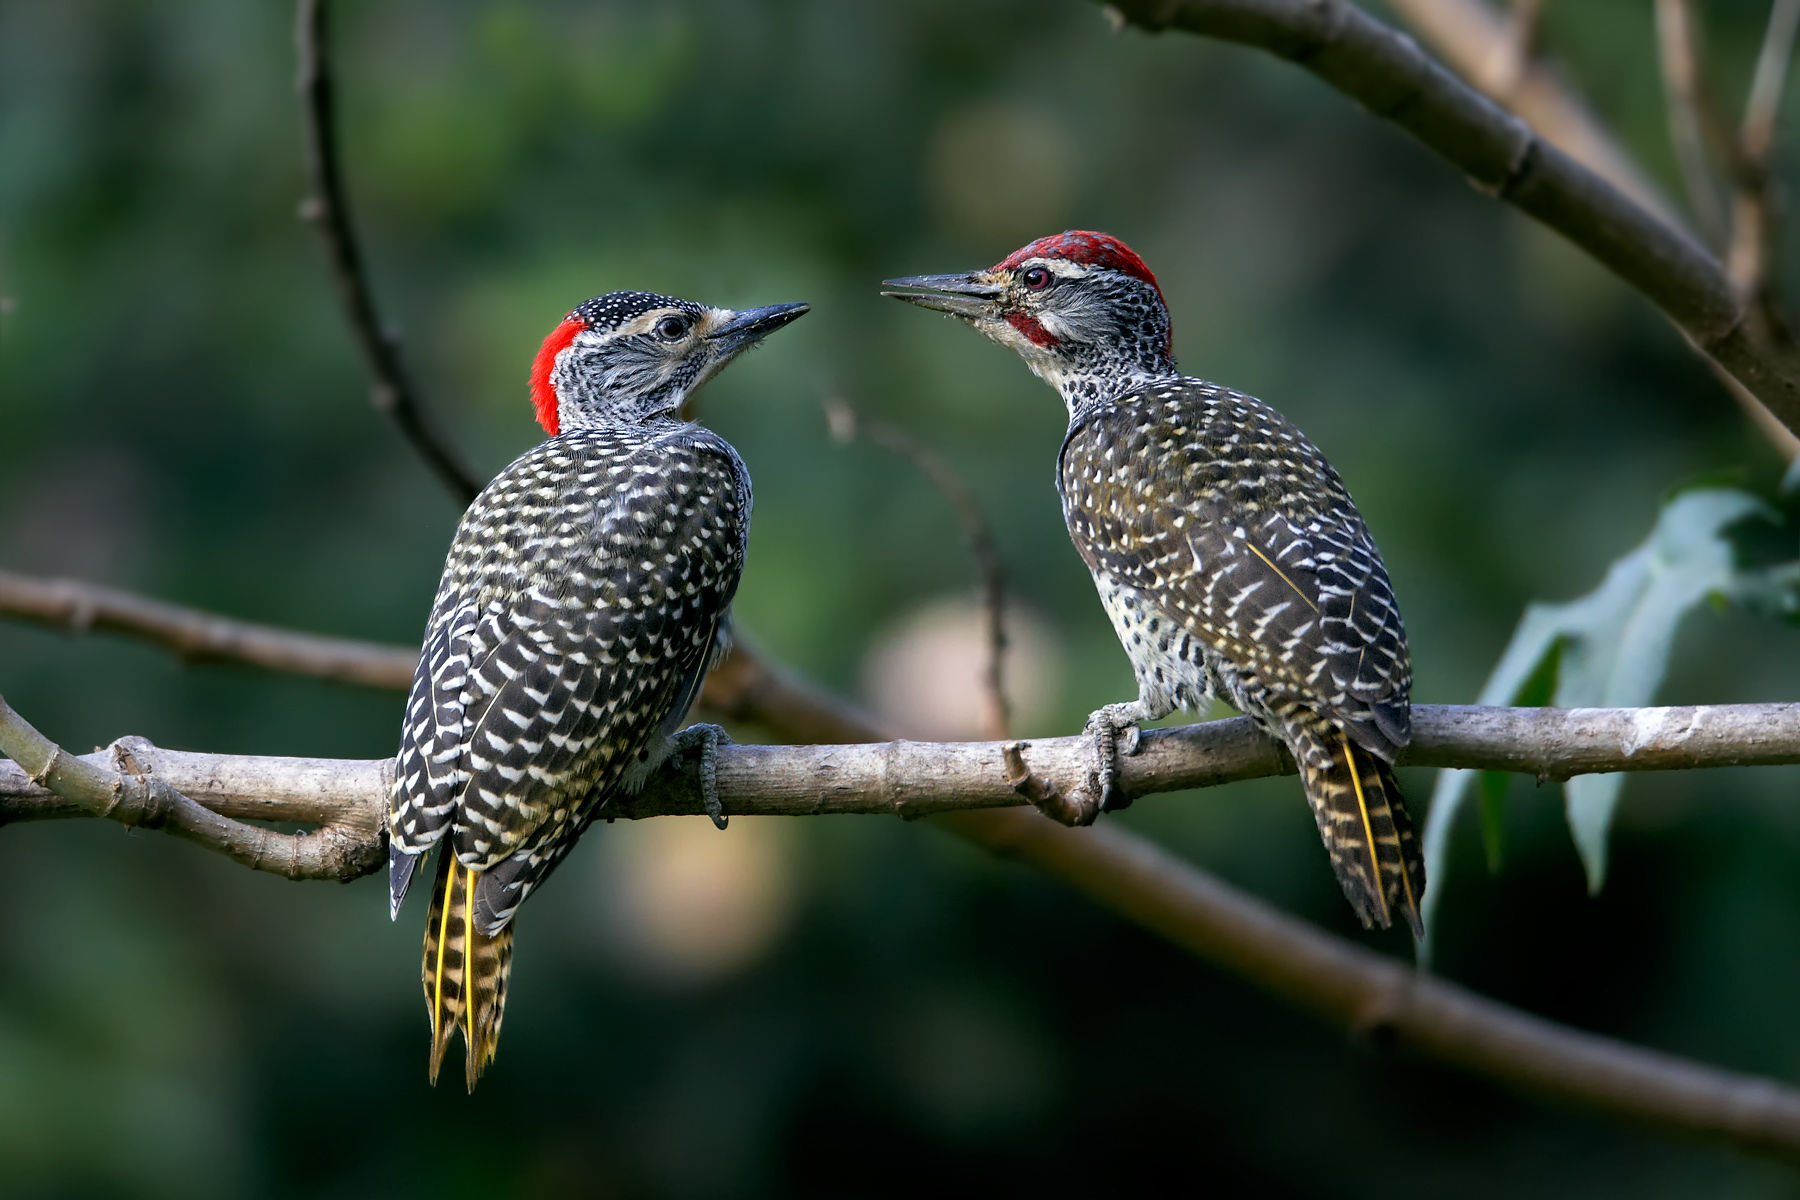 Nubian woodpeckers